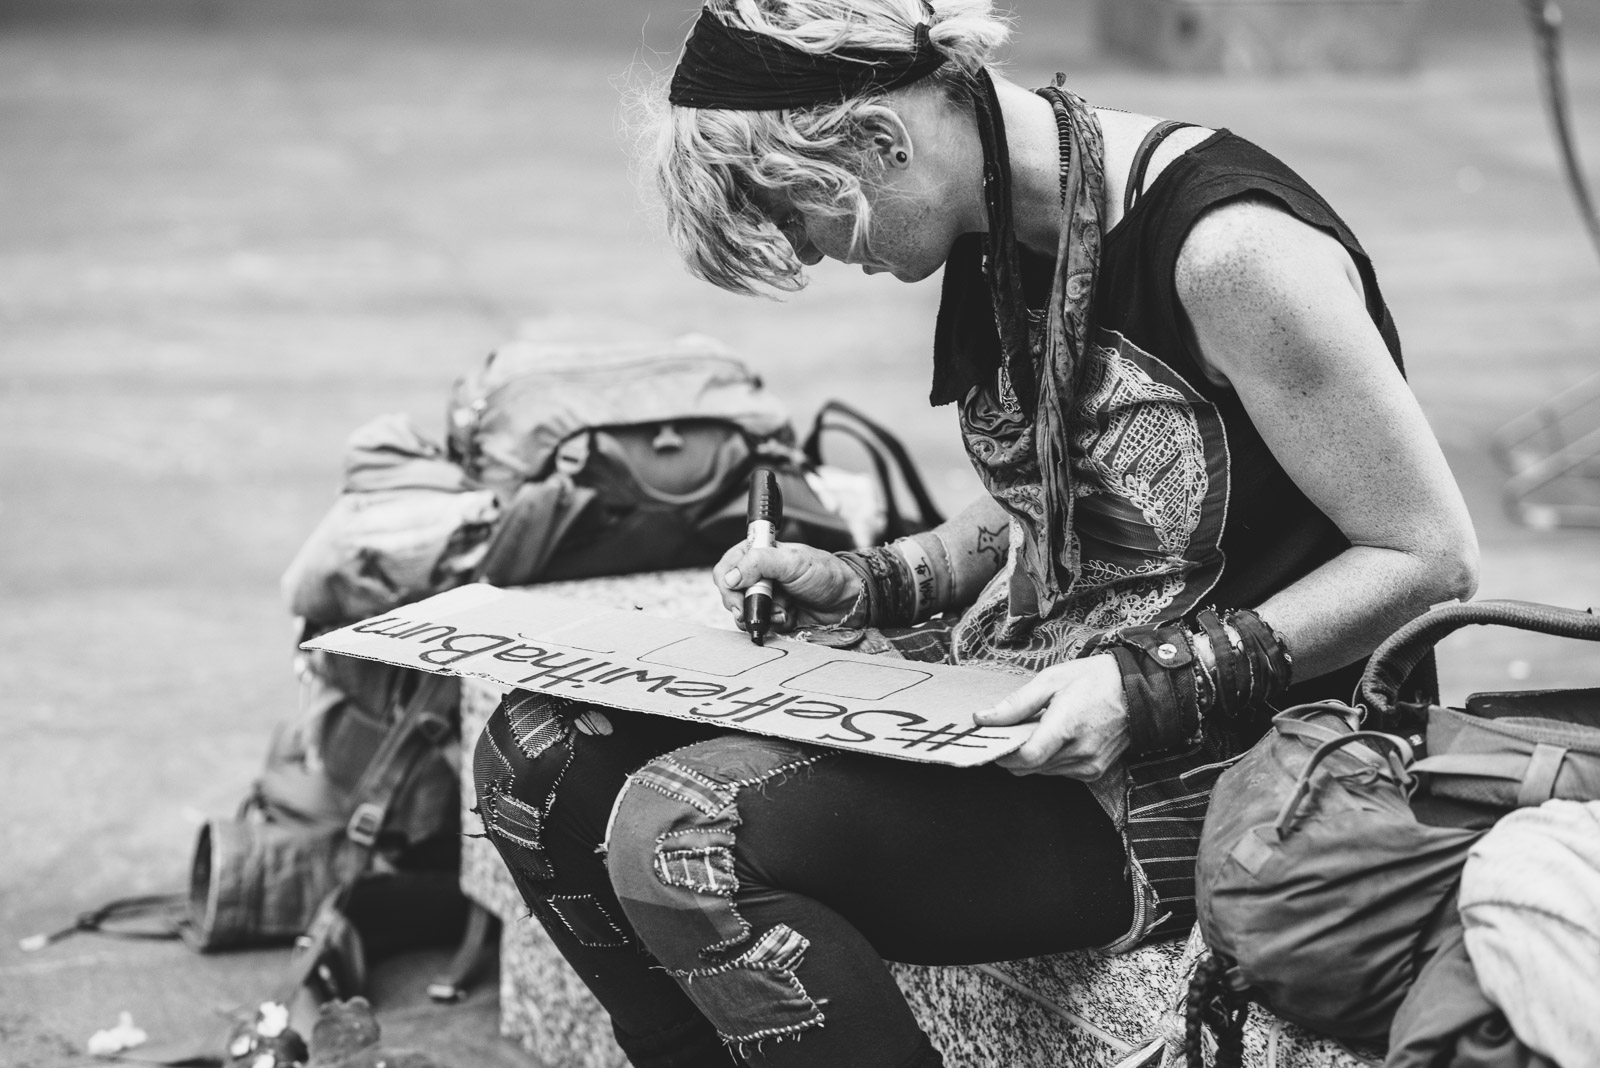 picture of woman writing on cardboard by Francesca Russell